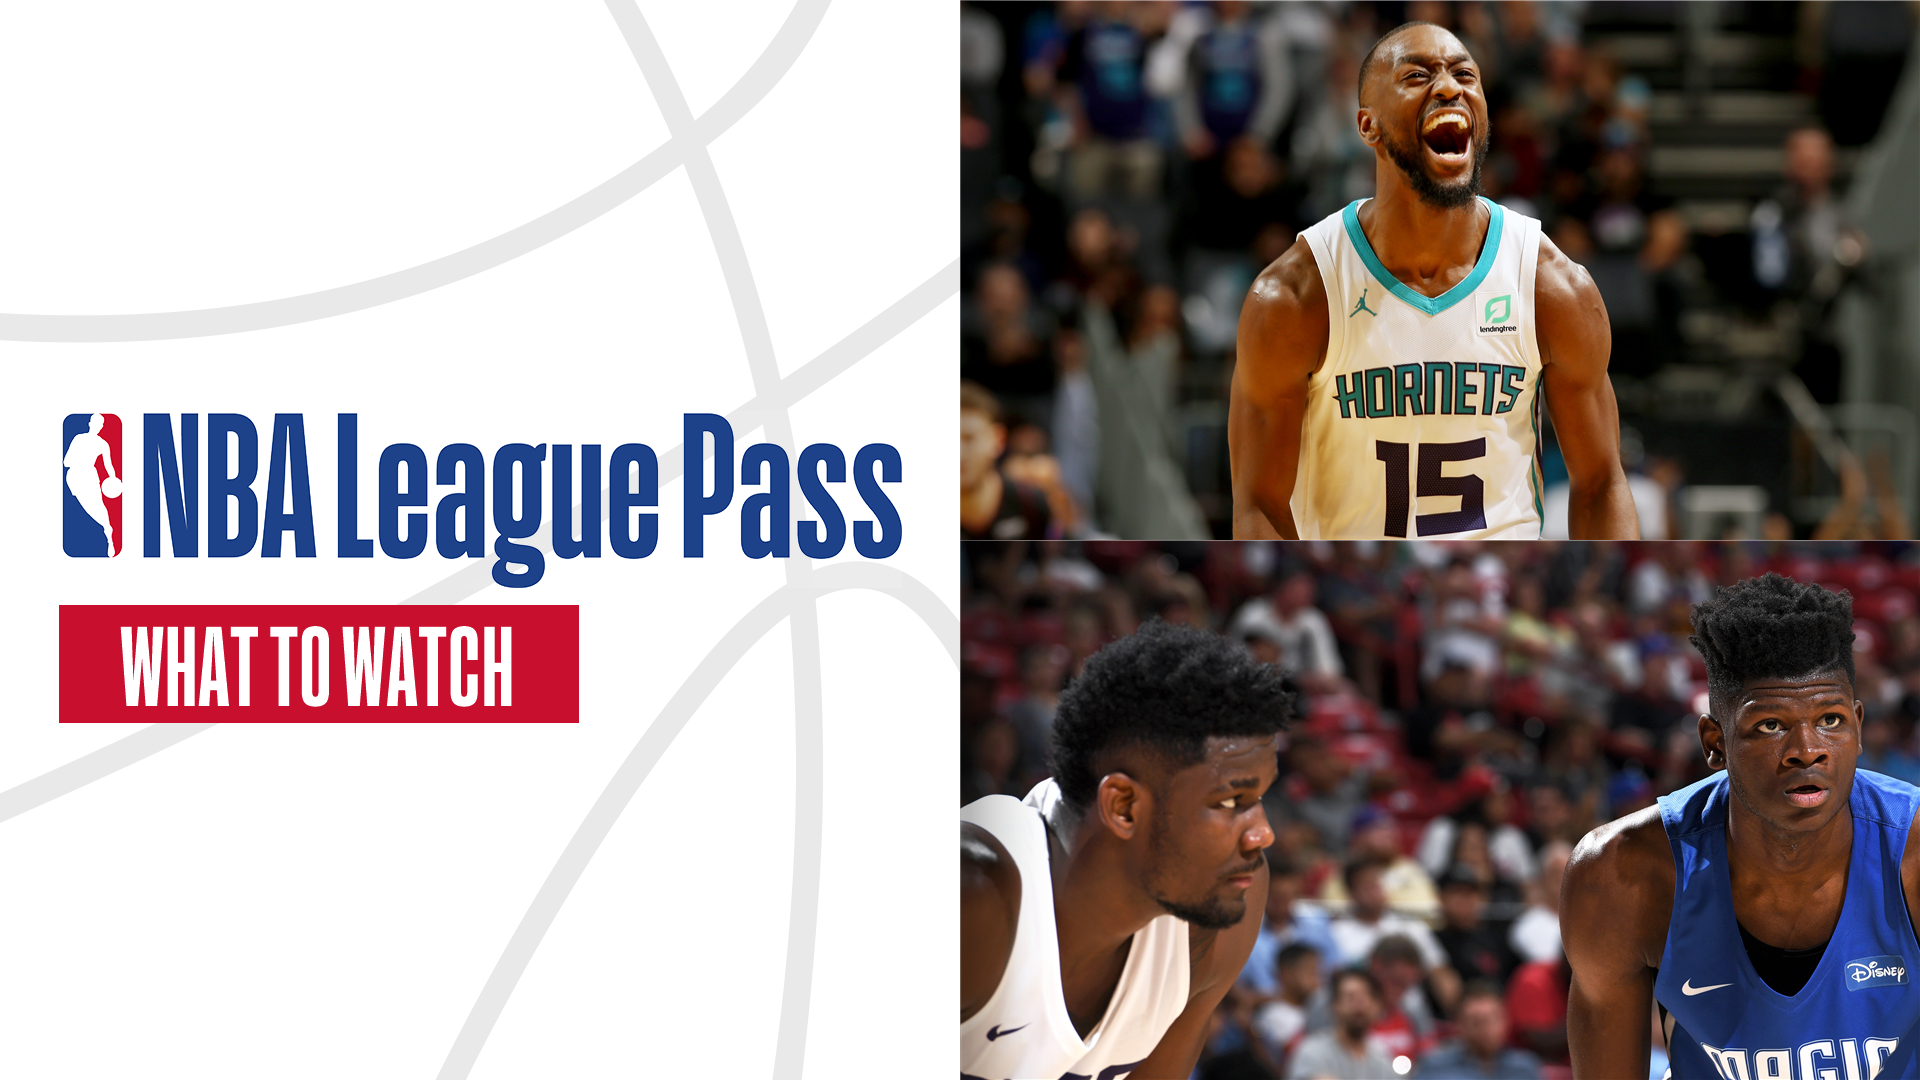 how to watch nba league pass on ps4